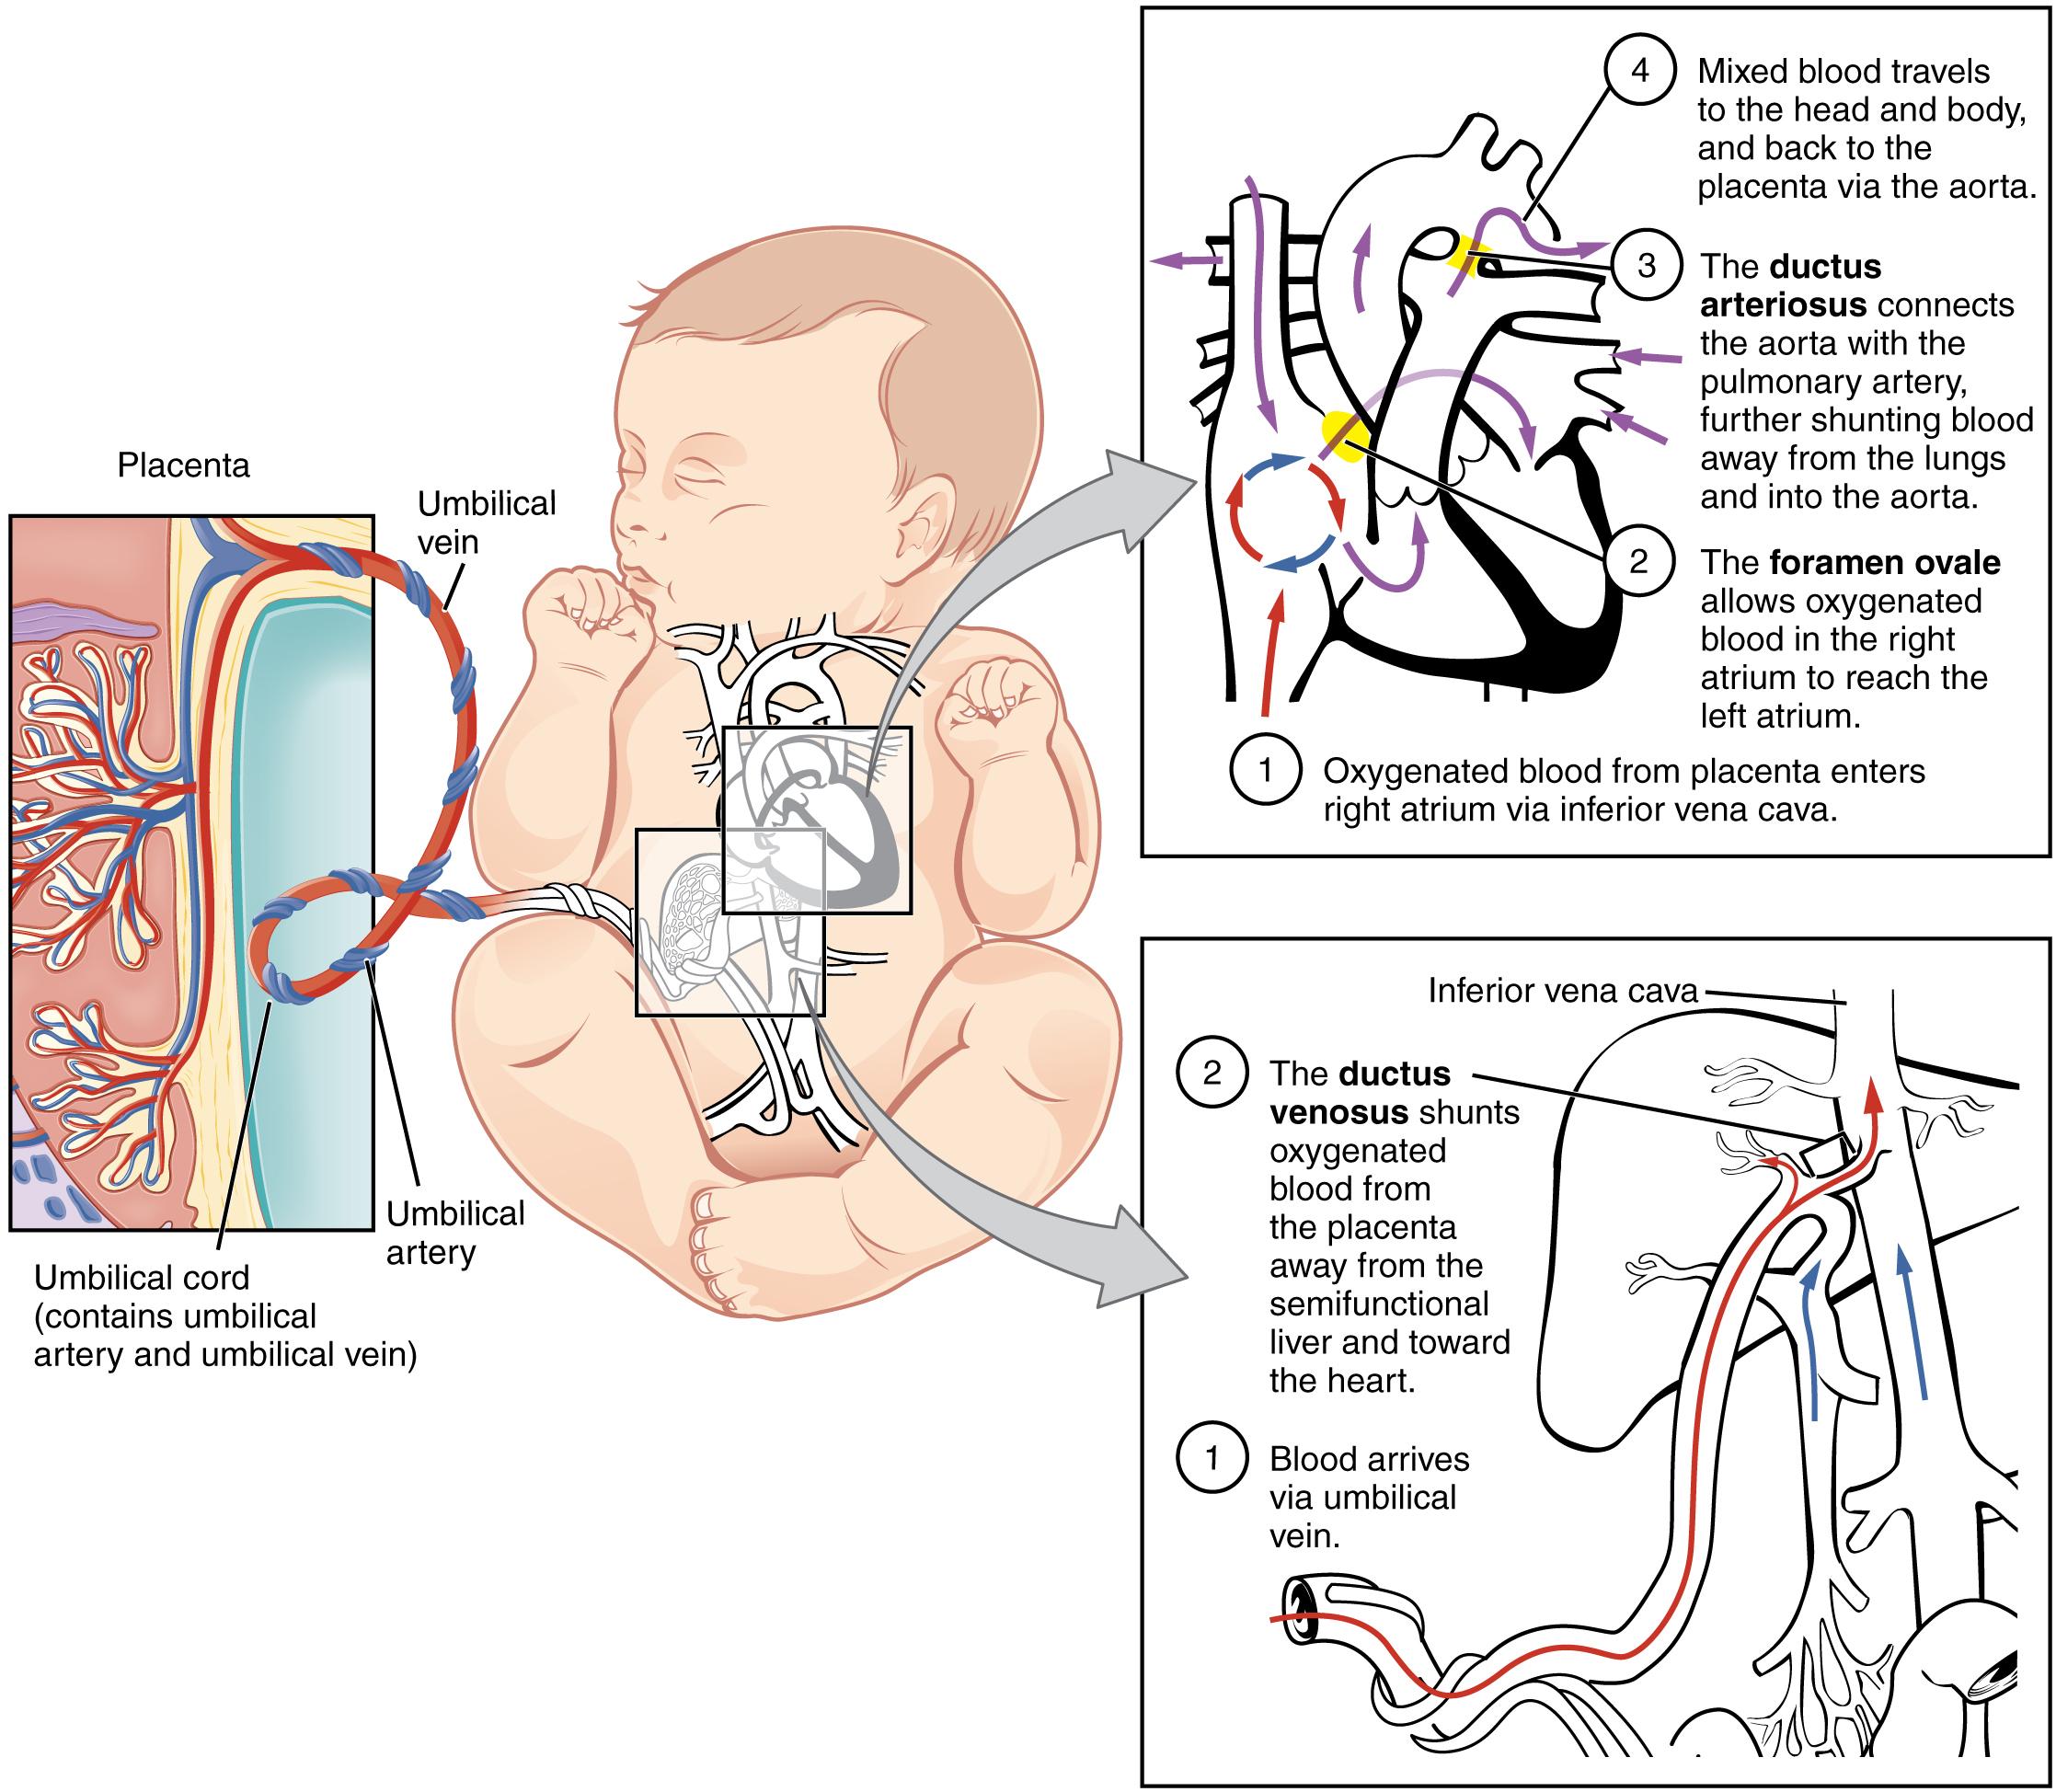 This figure shows a baby in the center of the image. To the left, is a panel showing the umbilical cord and how blood is supplied to the baby in the womb. Two panels on the right show the circulation of blood inside the baby's body.